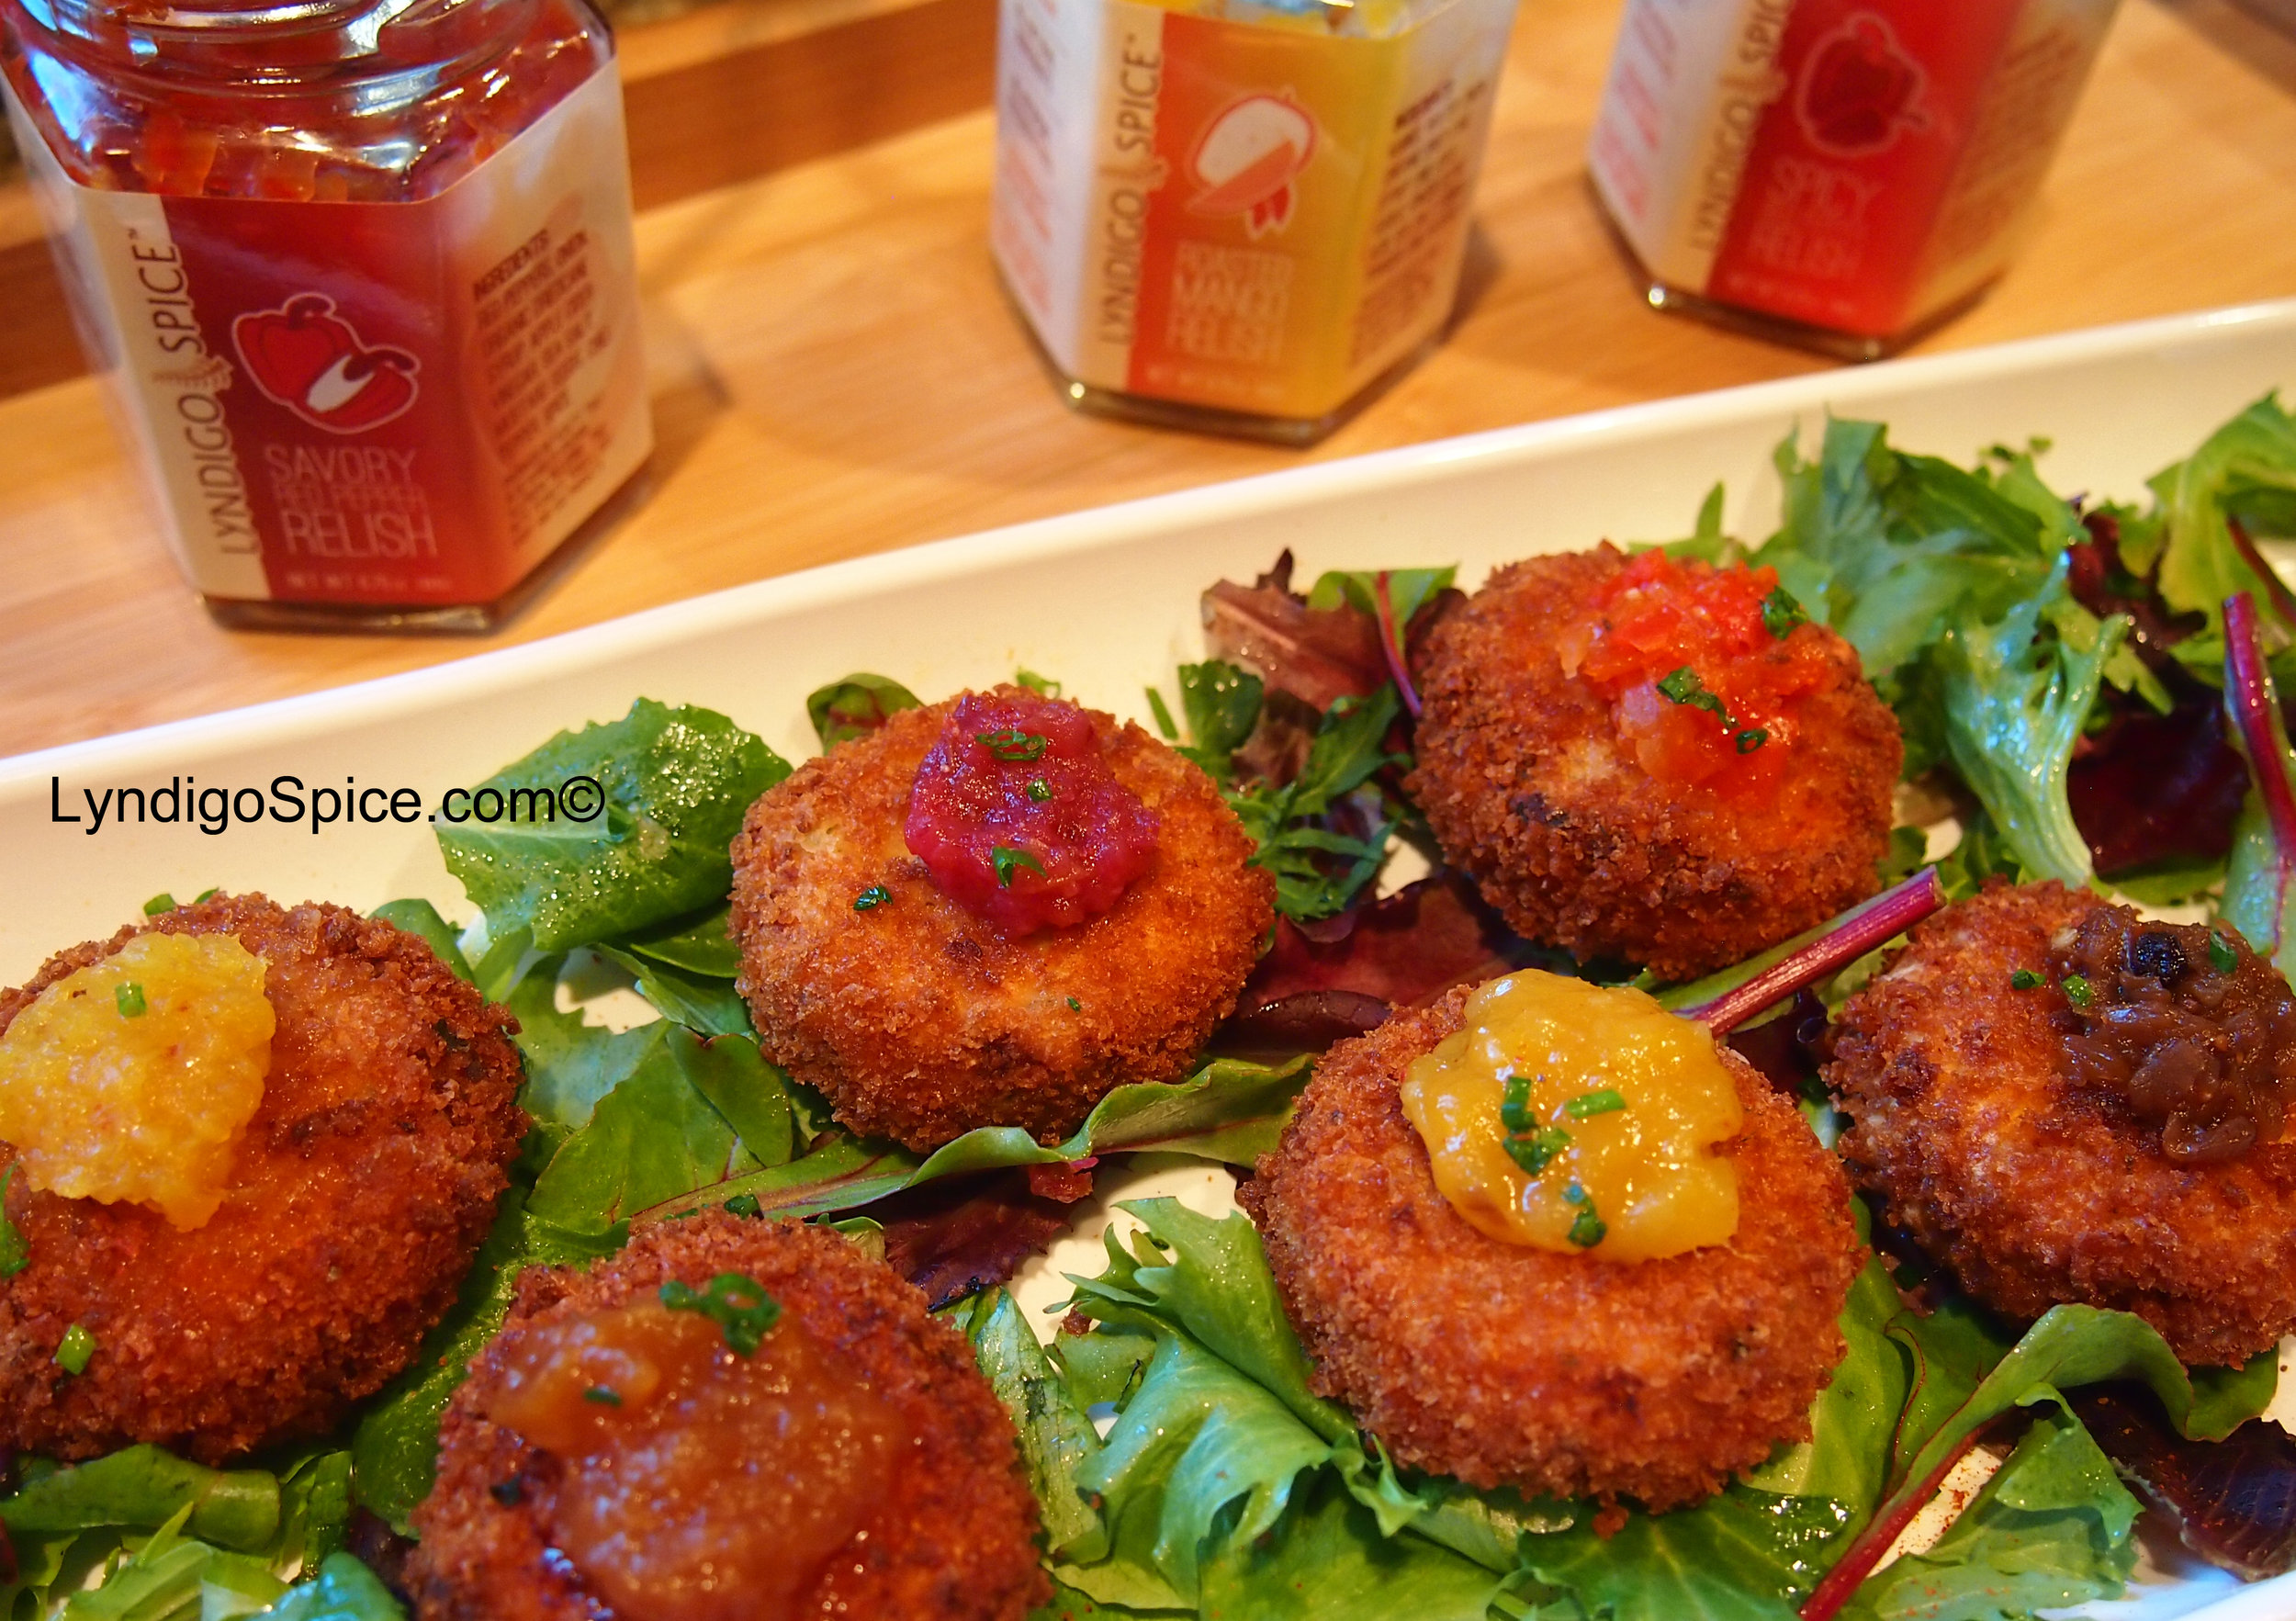 Salmon Cakes with Lyndigo Spice® chutneys and relishes.